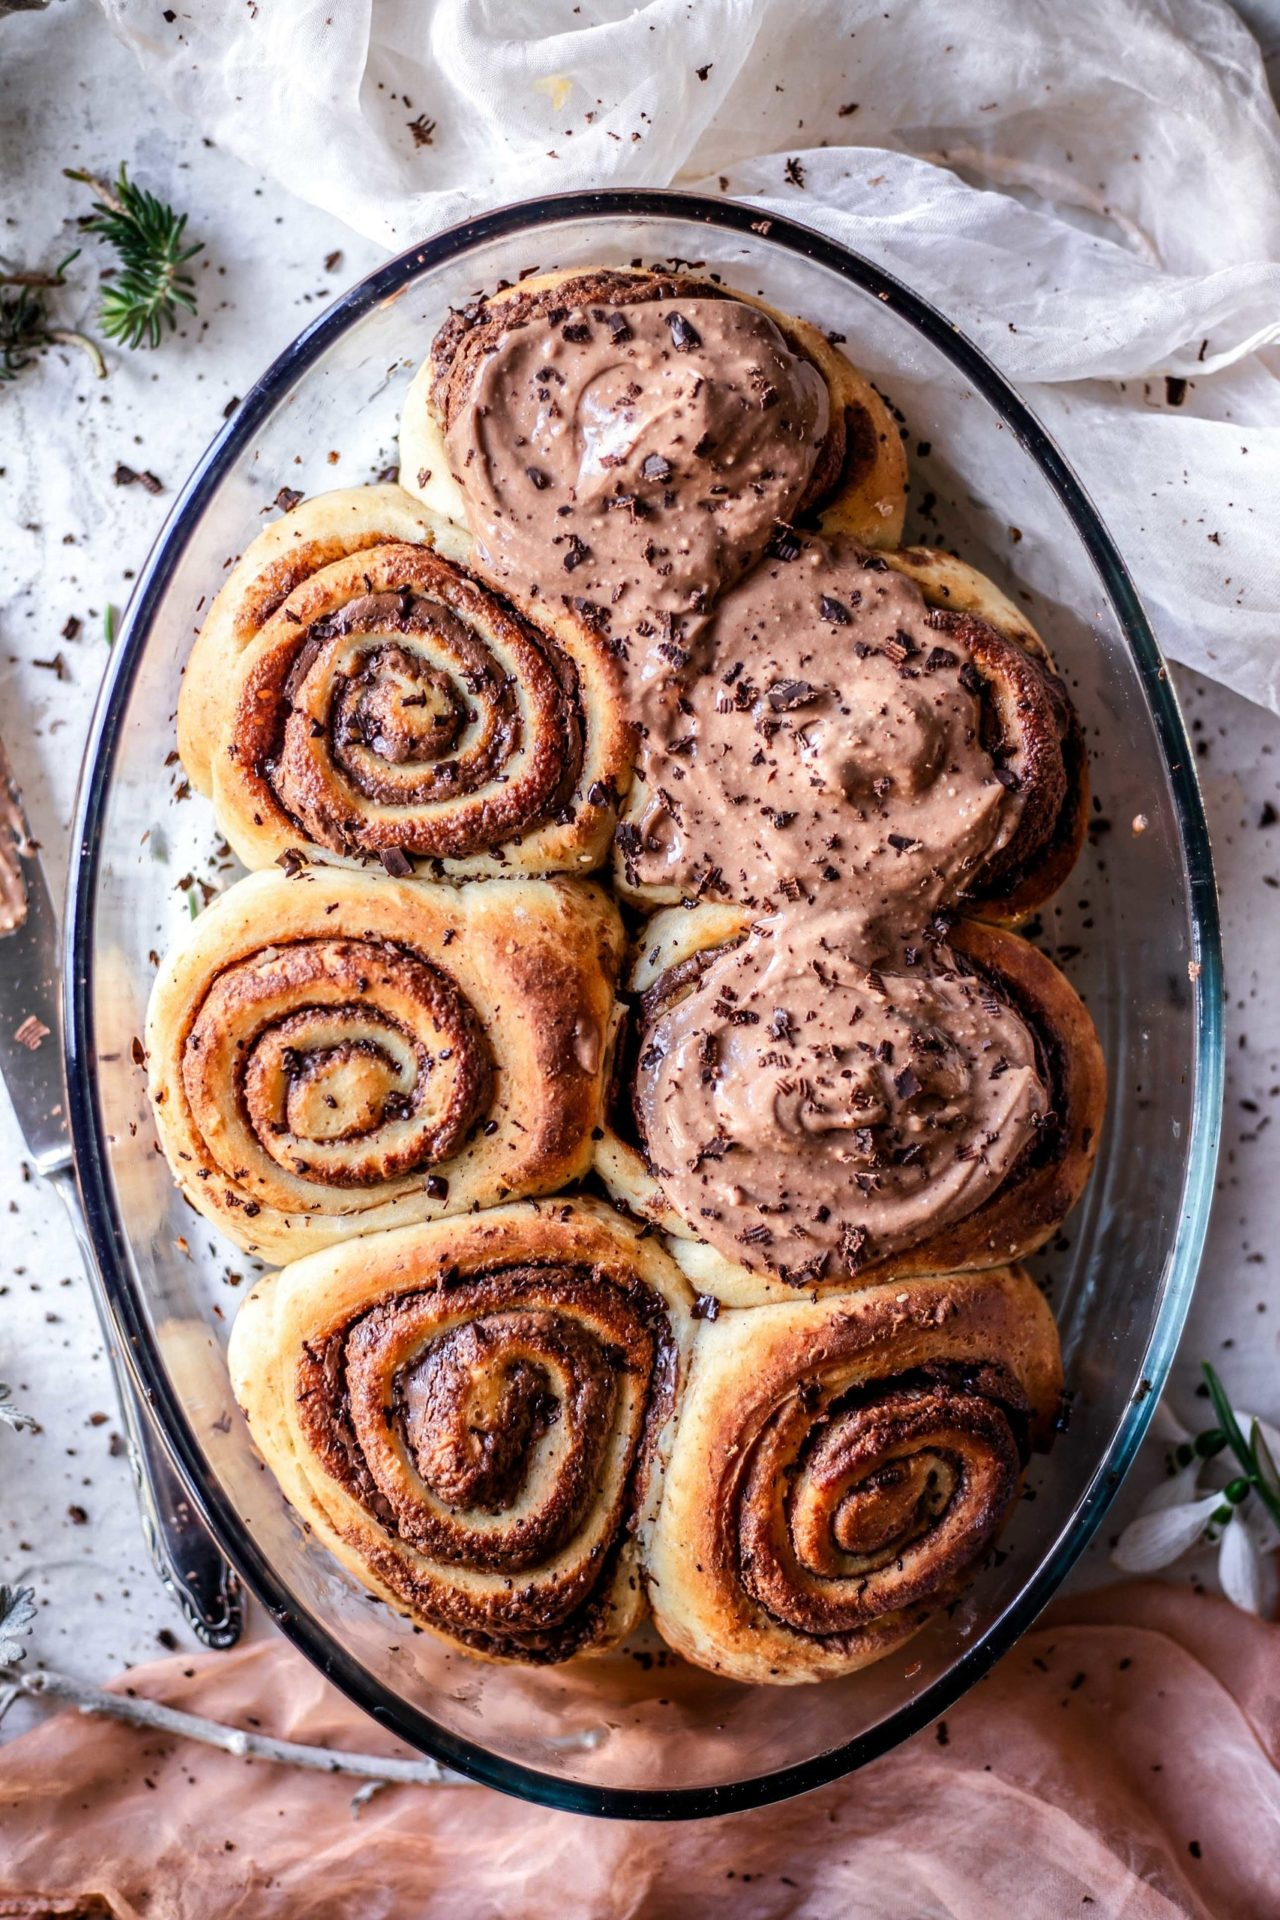 These Gluten-Free Chocolate Rolls are soft, flaky, extra chocolaty, perfectly sweetened, buttery, and super fluffy!